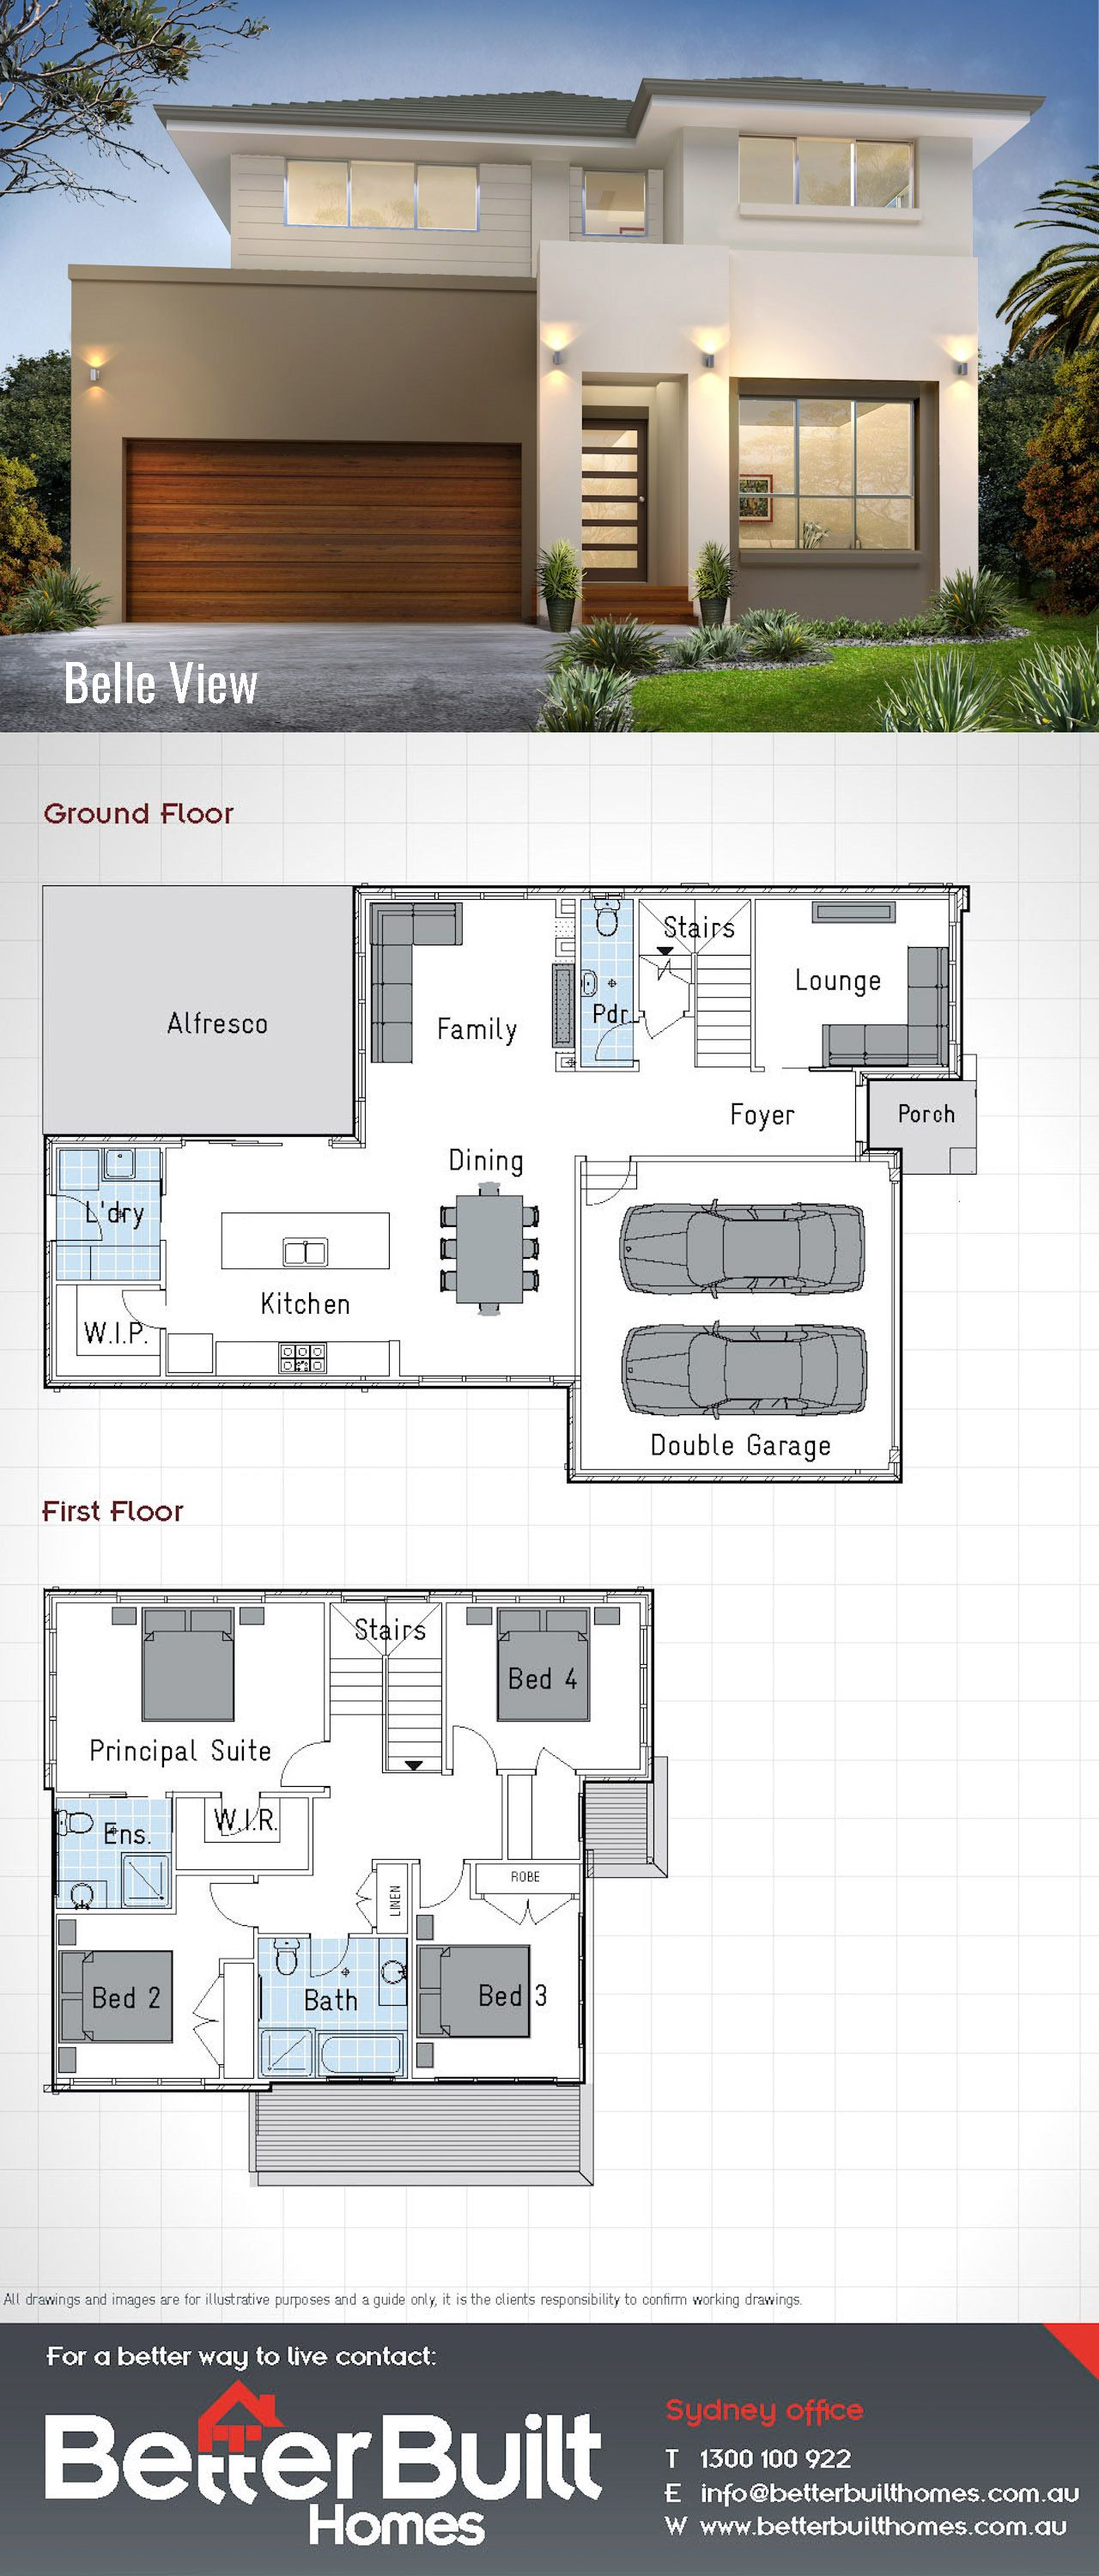 the waterbrook double storey house design 265 sq m 12 09m x the belle view 26 double storey house design 232 sq m 10 7m x